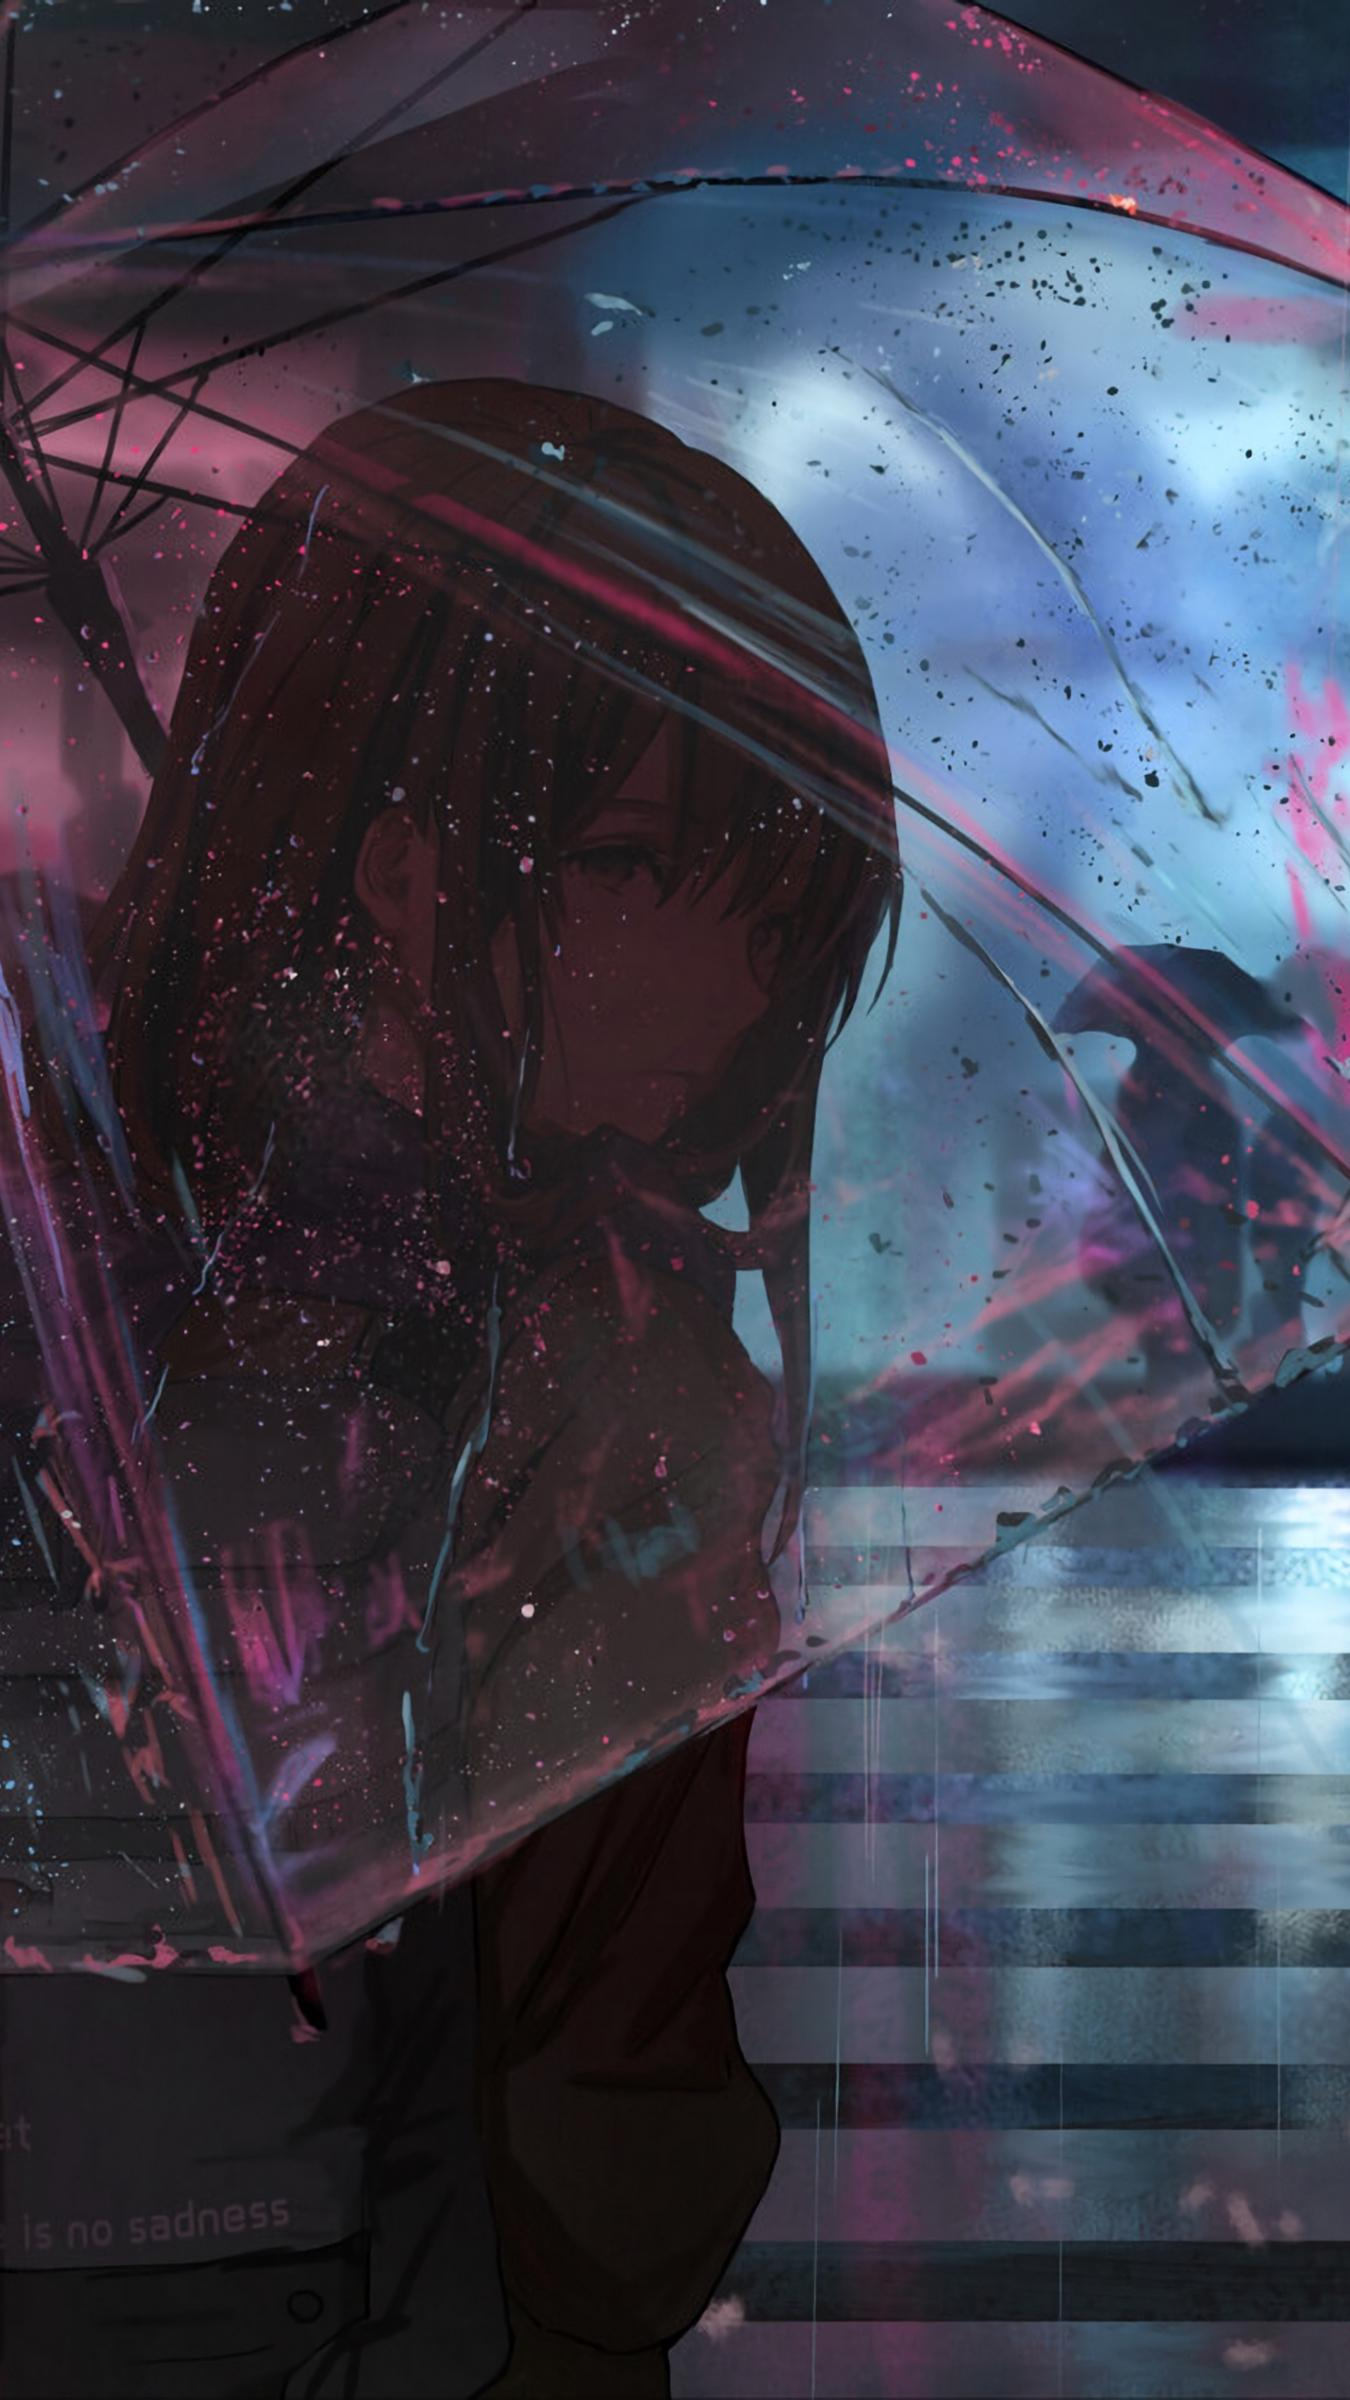 Sad Anime Wallpaper Phone : anime, wallpaper, phone, Anime, IPhone, Wallpapers, Wallpaper